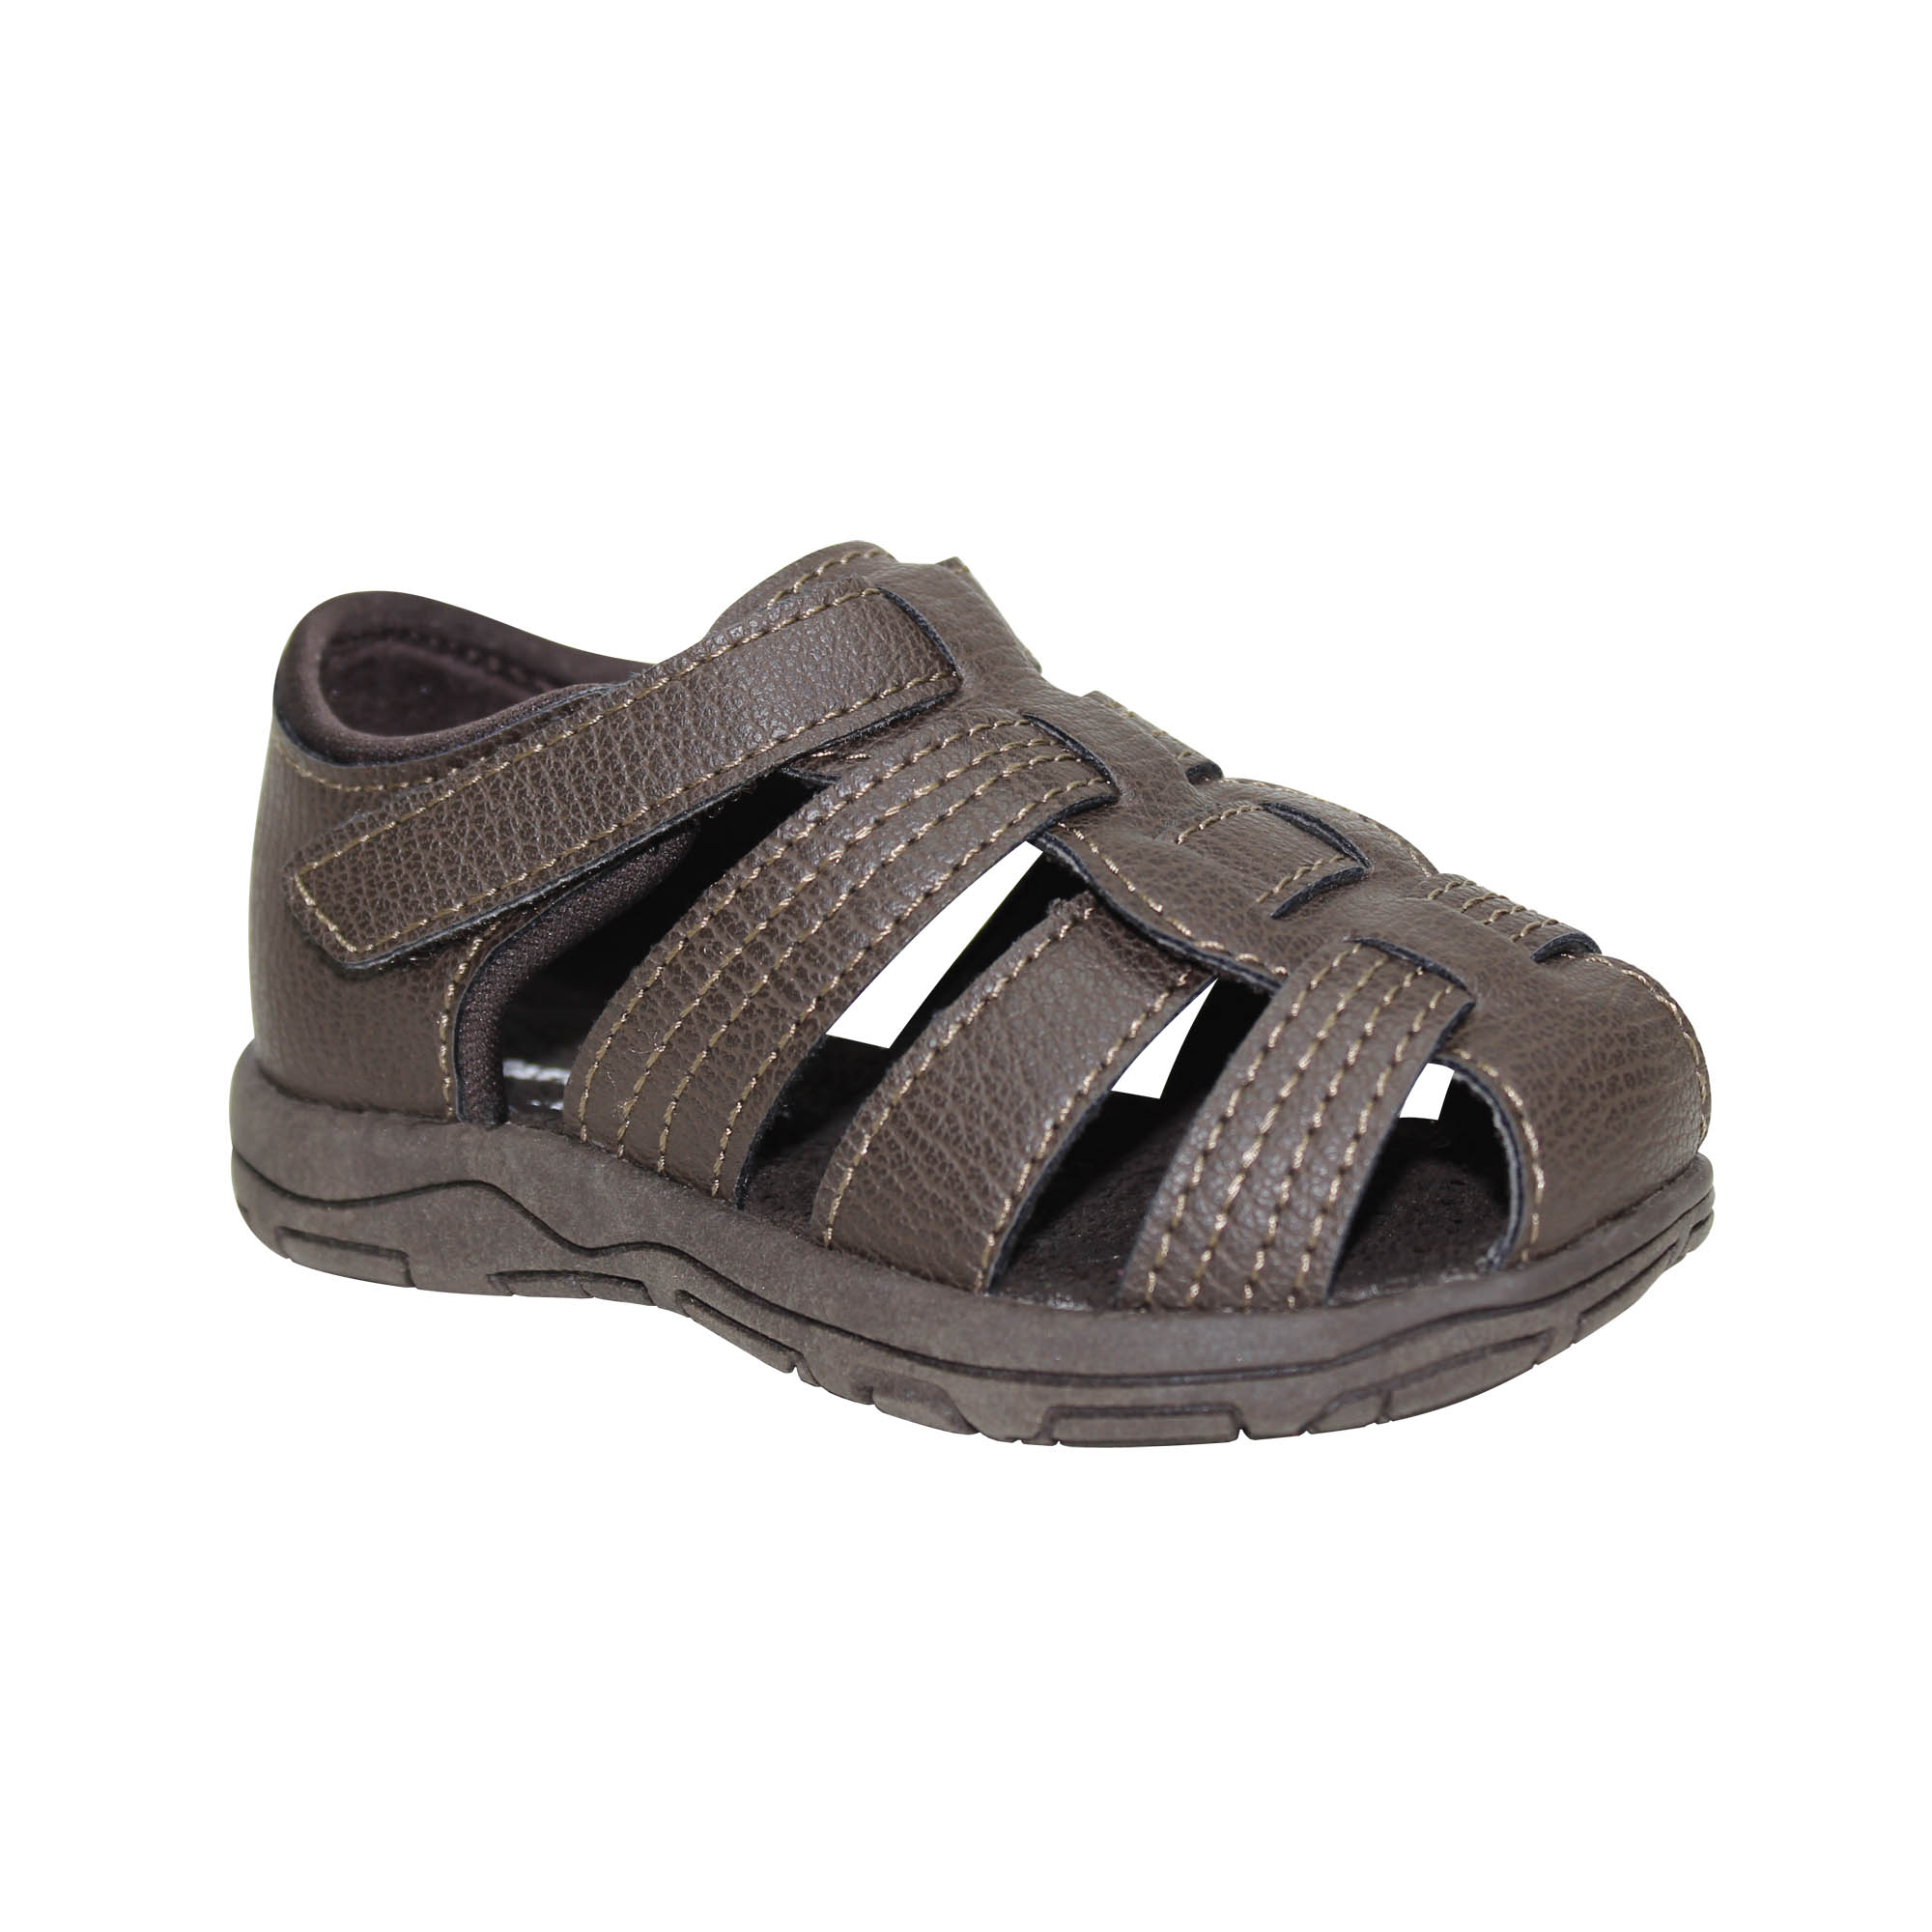 Garanimals Baby Boys' Fisherman Sandal